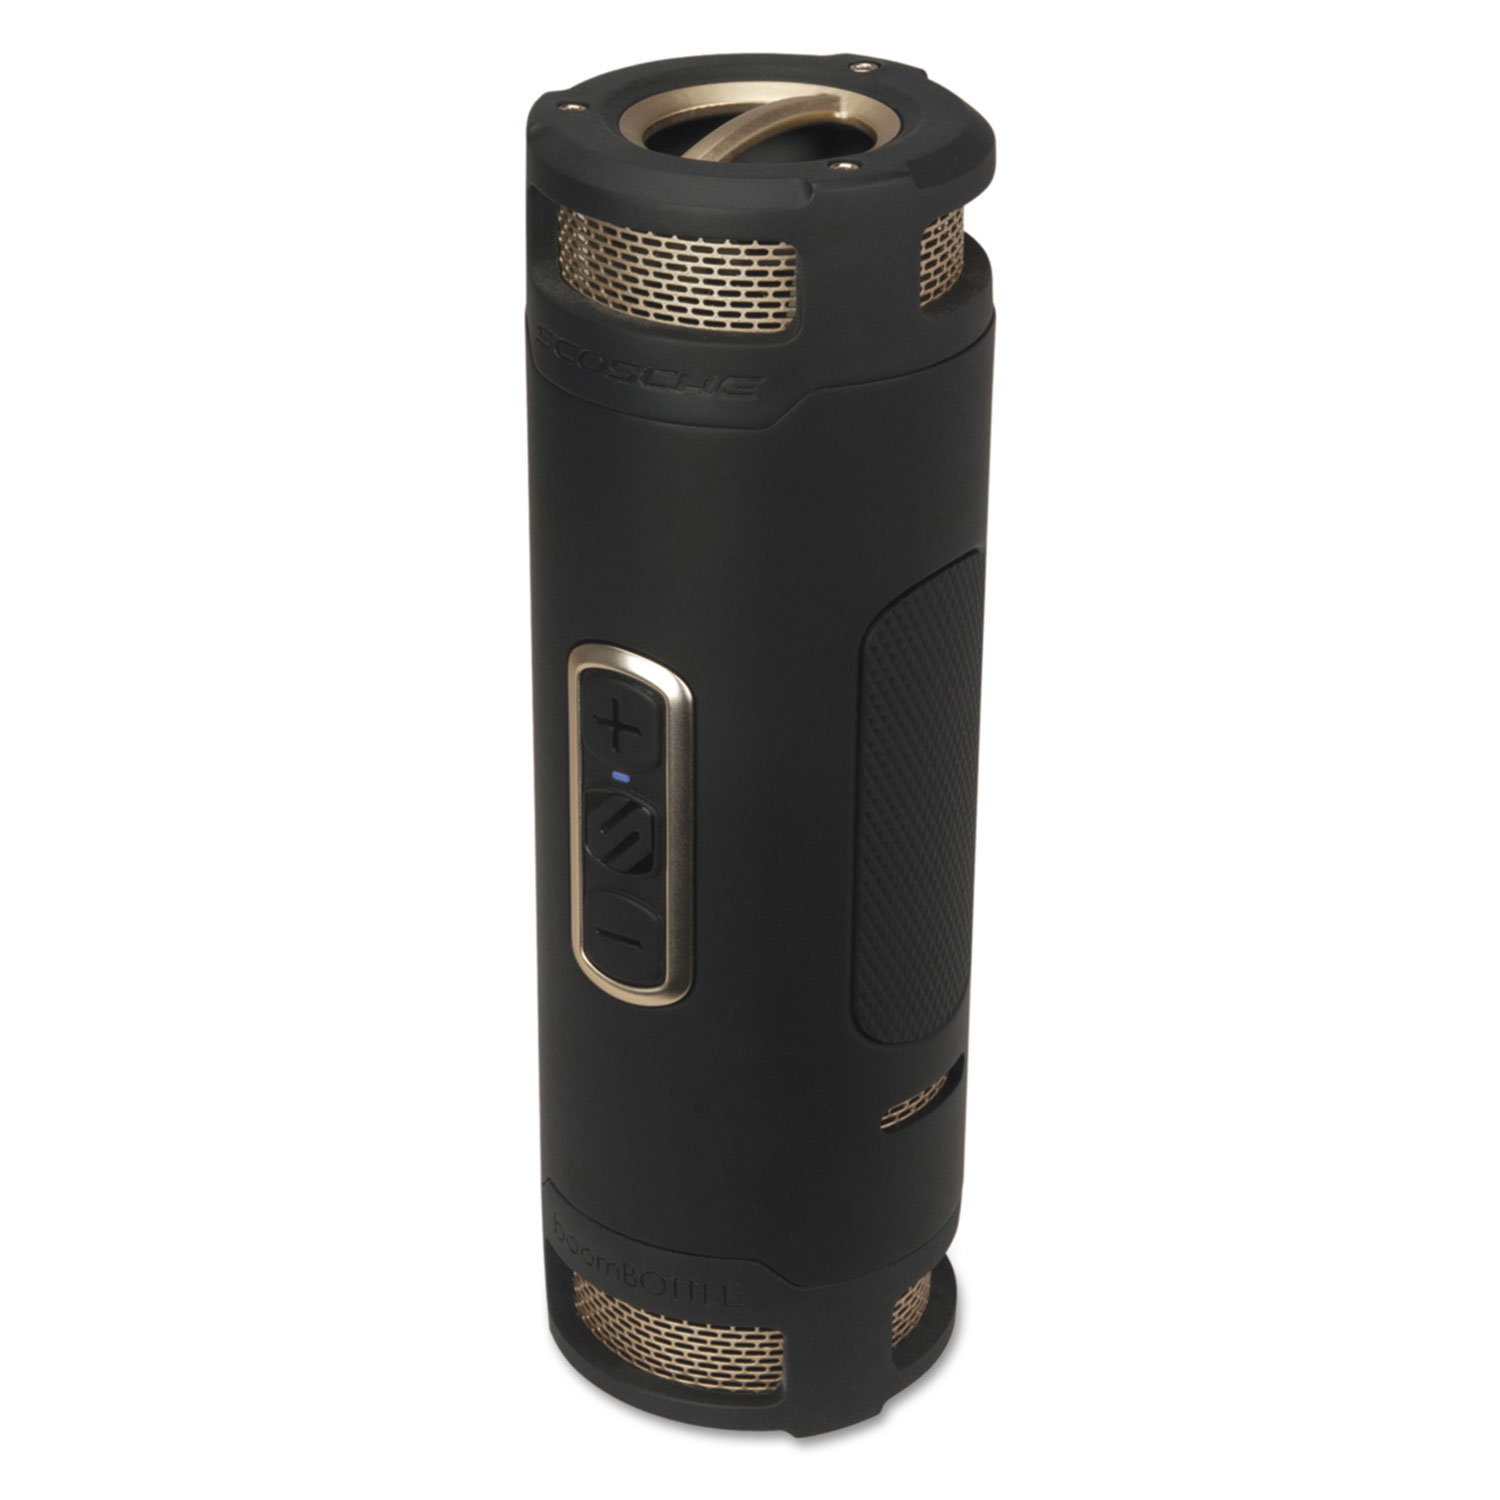 BoomBOTTLE+ Rugged Waterproof Wireless Portable Speaker, Black/Gold